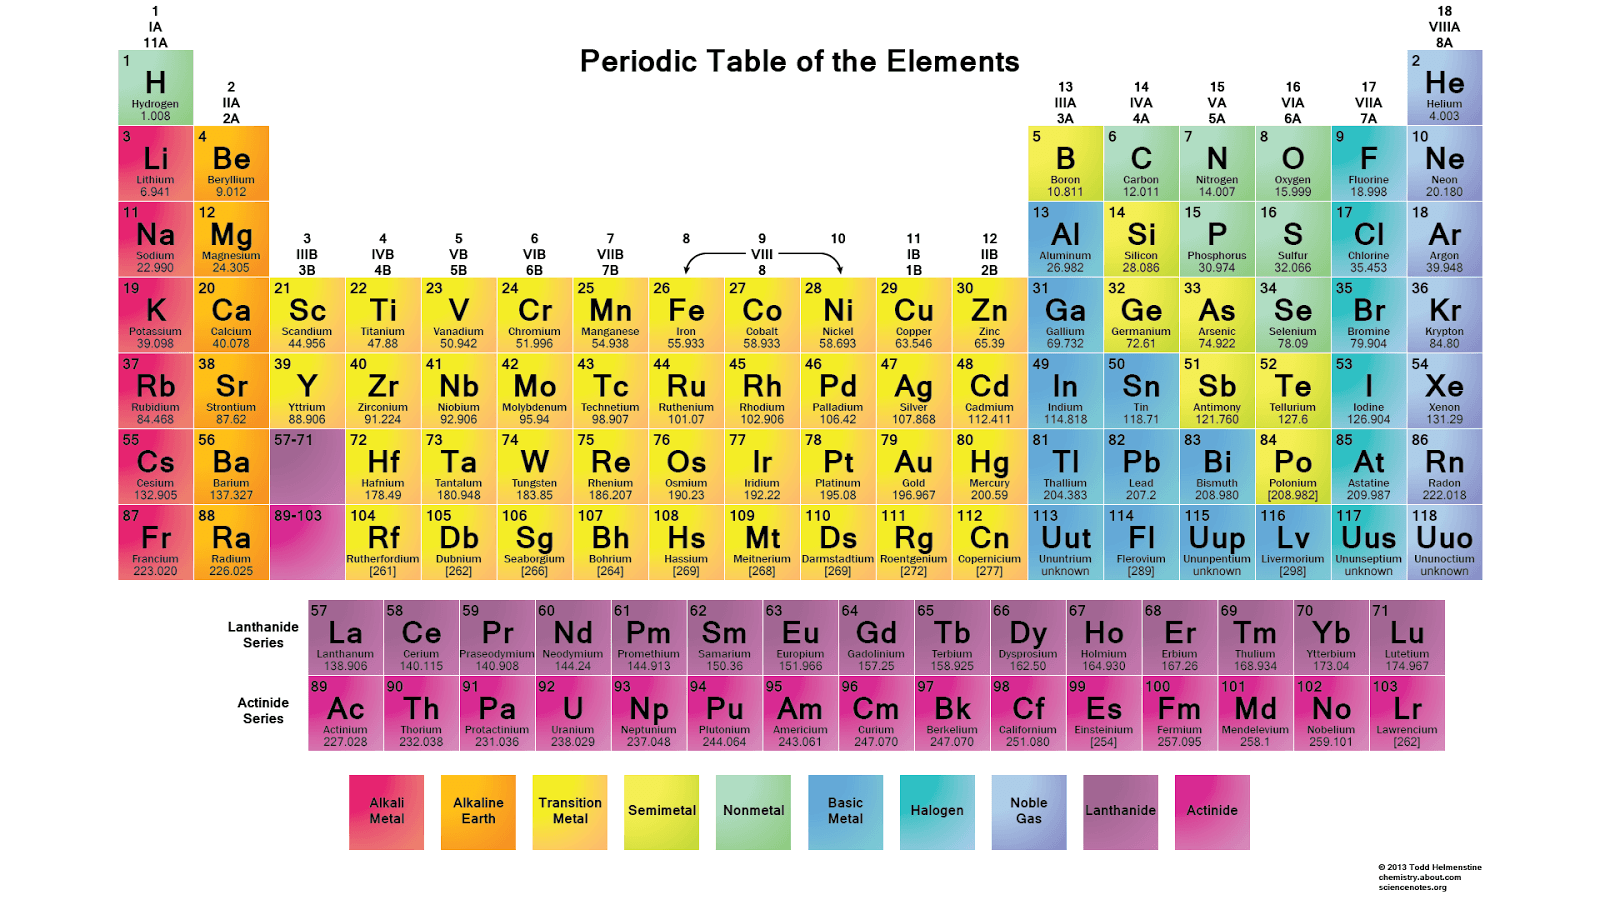 Periodic table of elements symbol clipart.